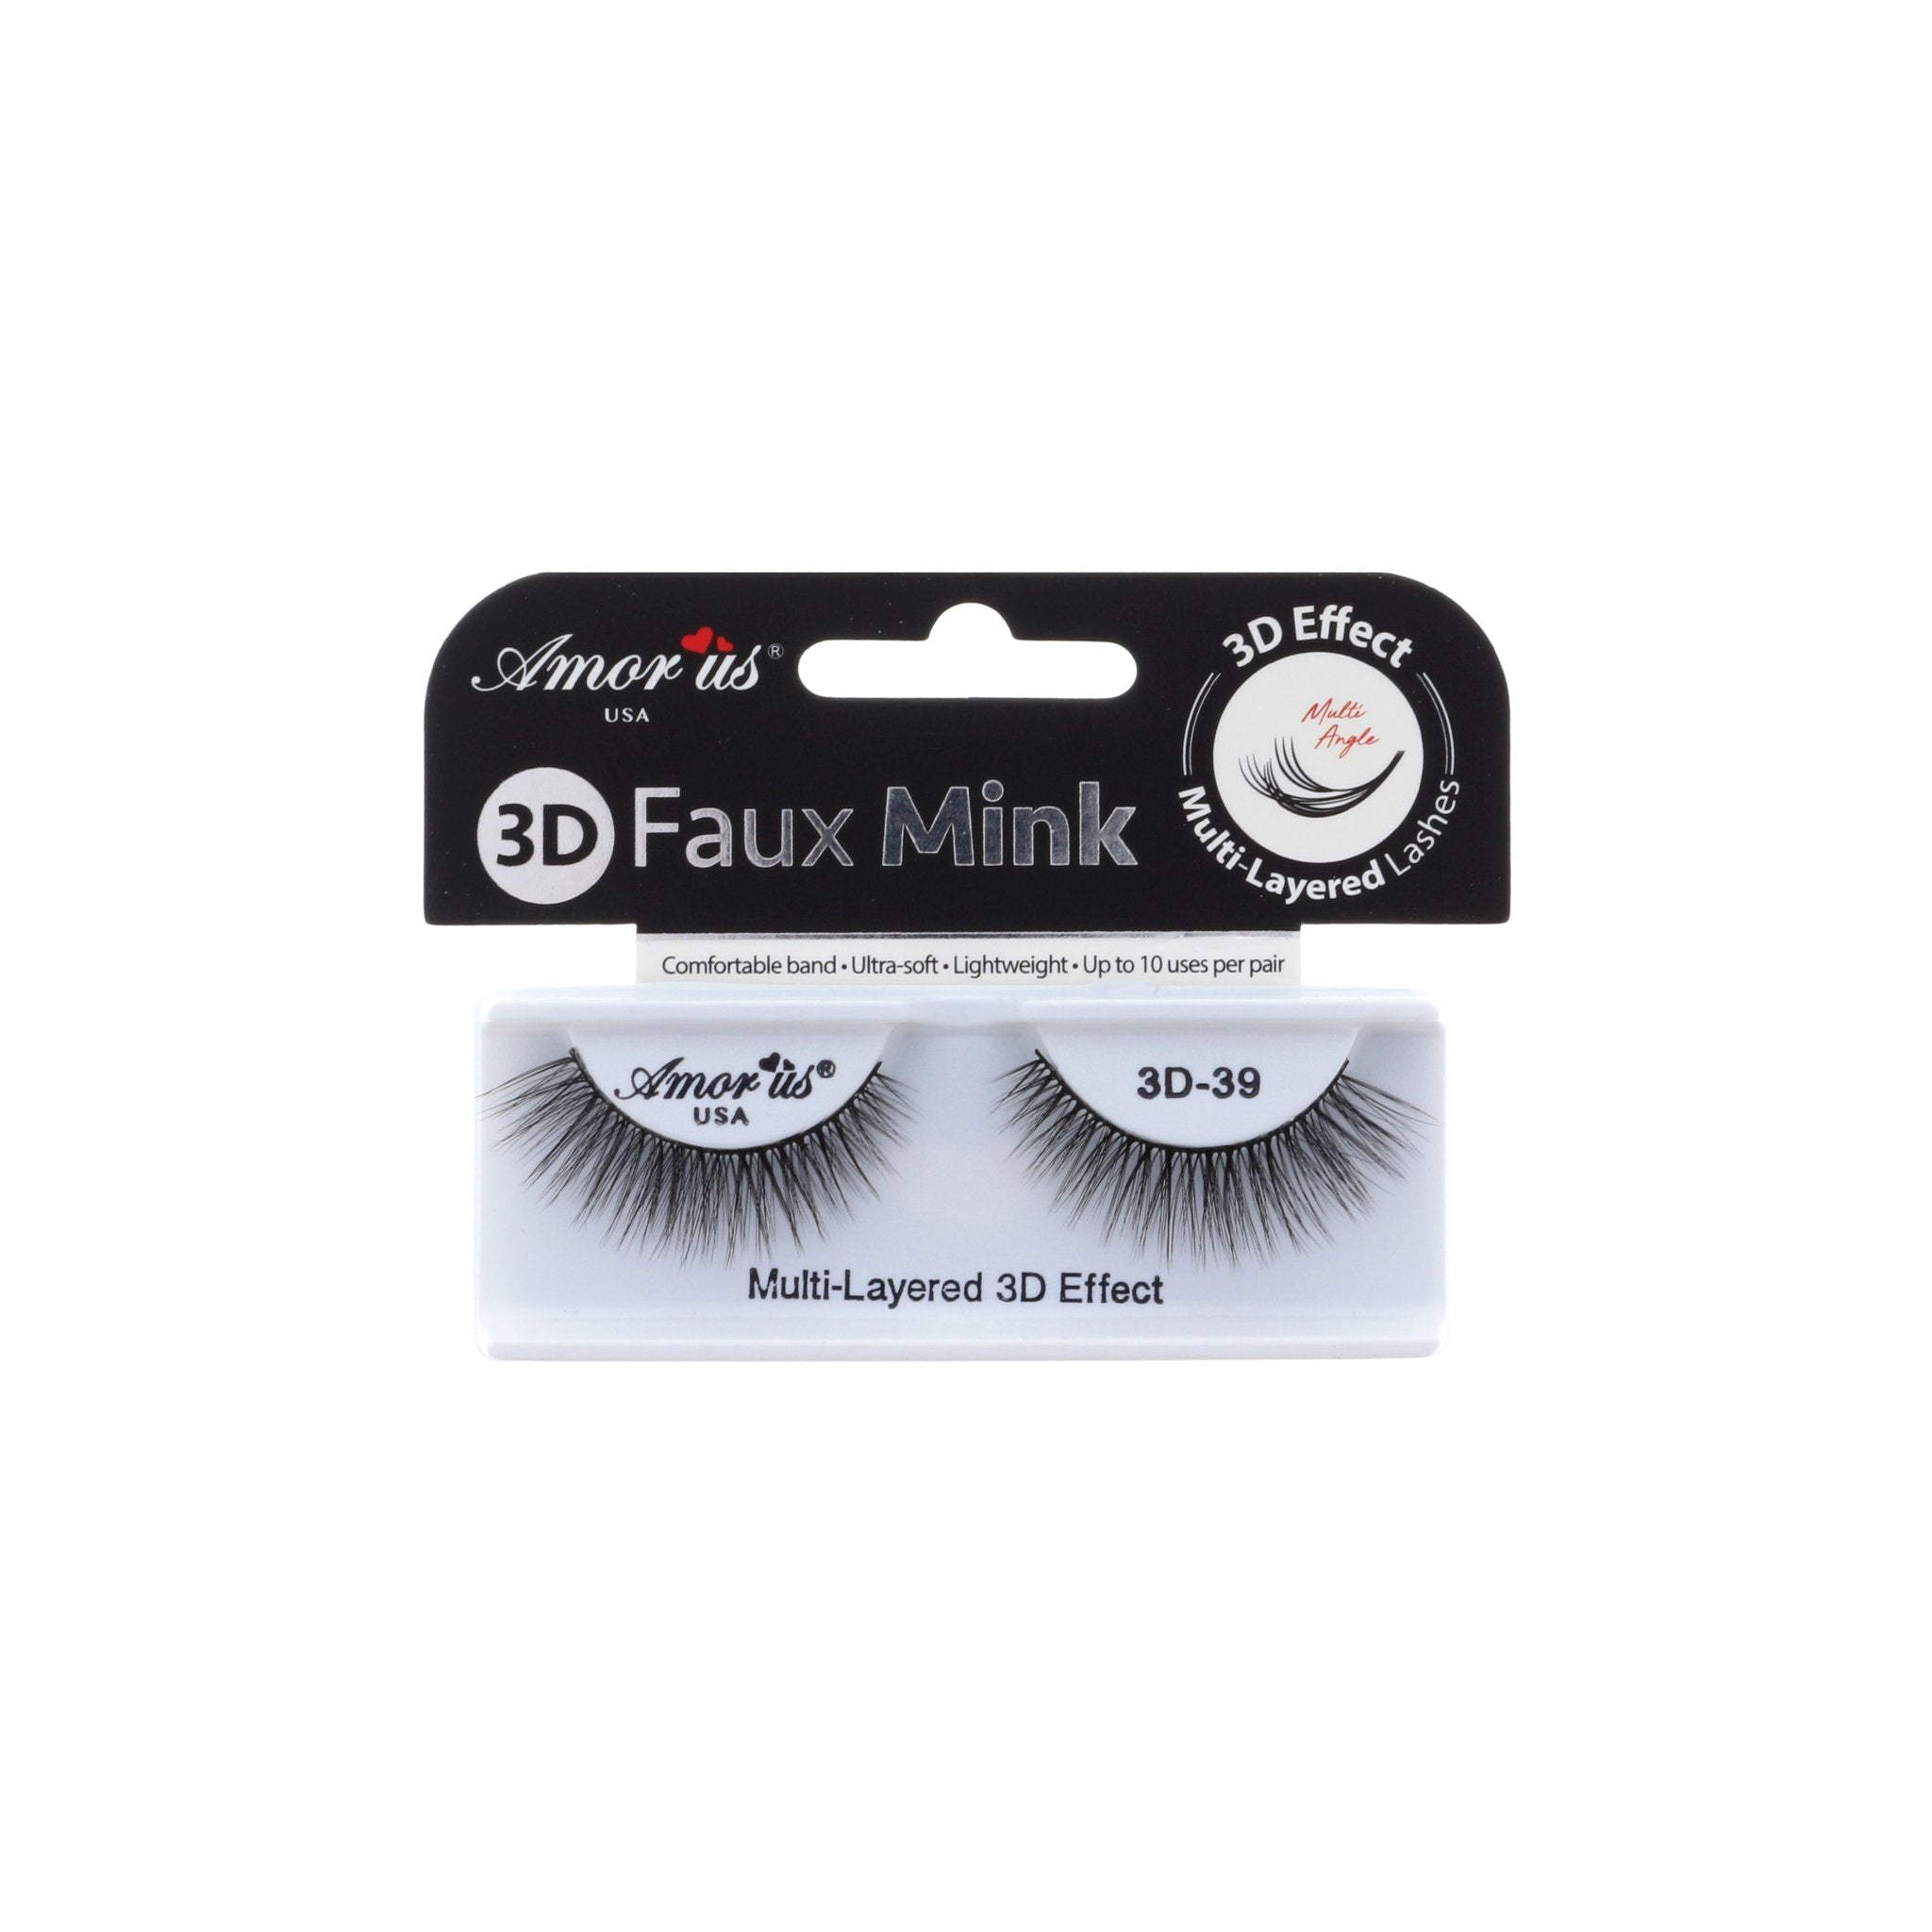 Amor Us Faux Mink 3D Eyelashes